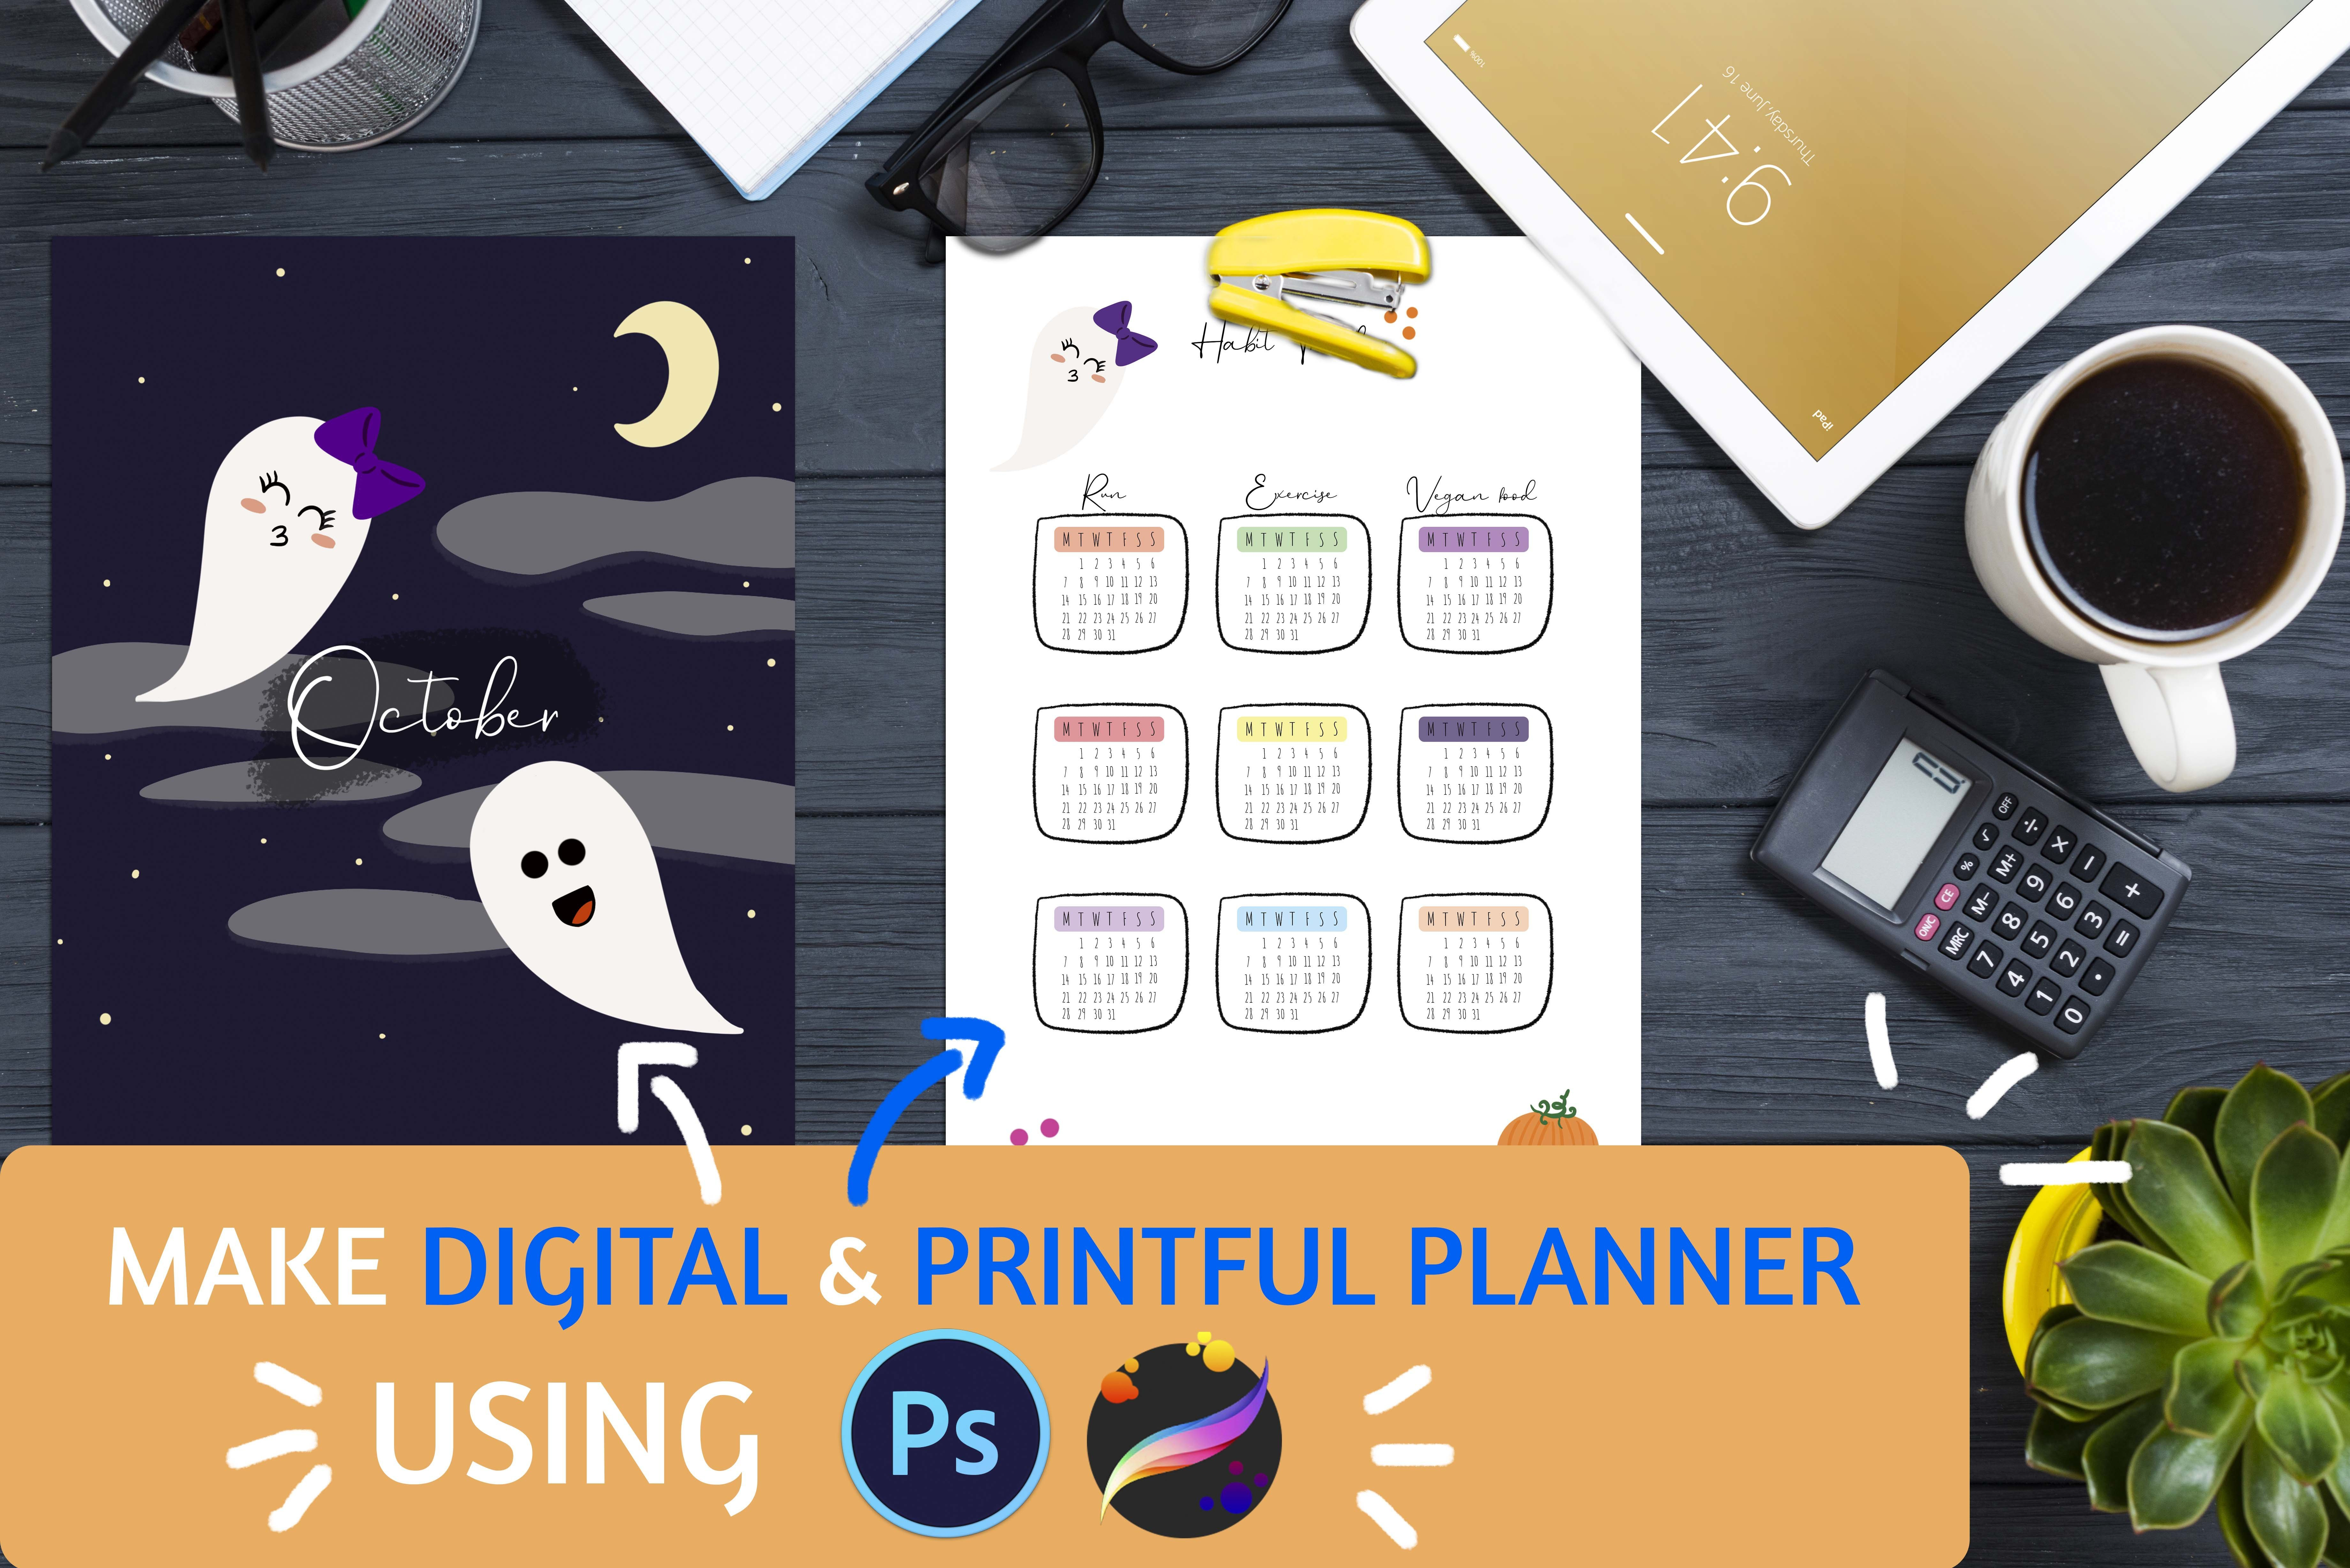 Easy, Digital, Printful, Planner Designed By You For You in Adobe Photoshop & Procreate